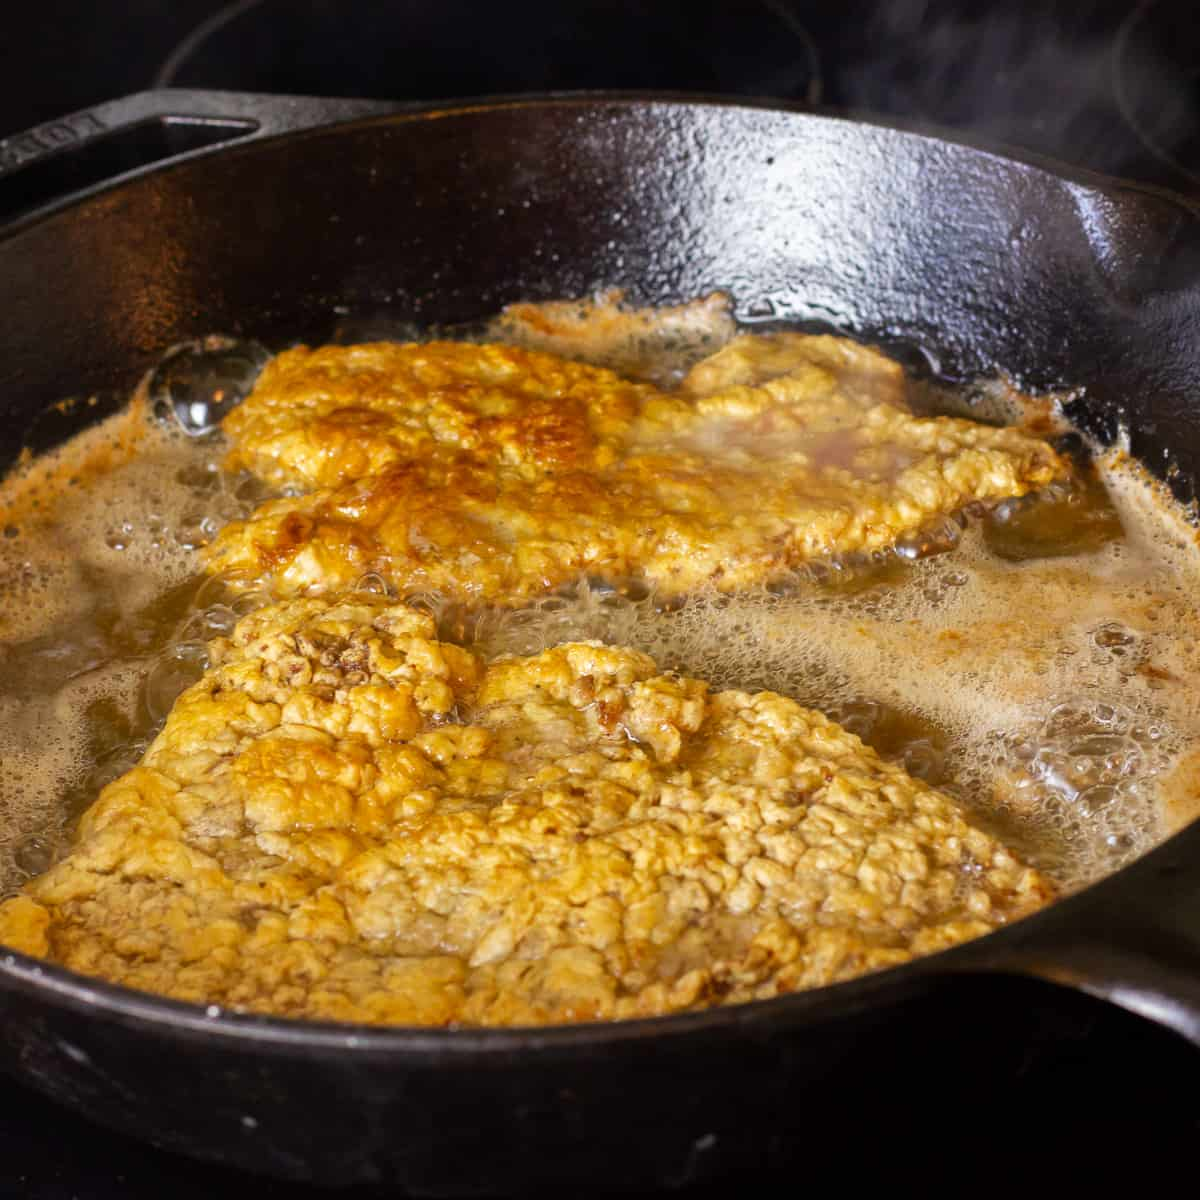 Fry in a cast iron skillet with oil until golden brown.